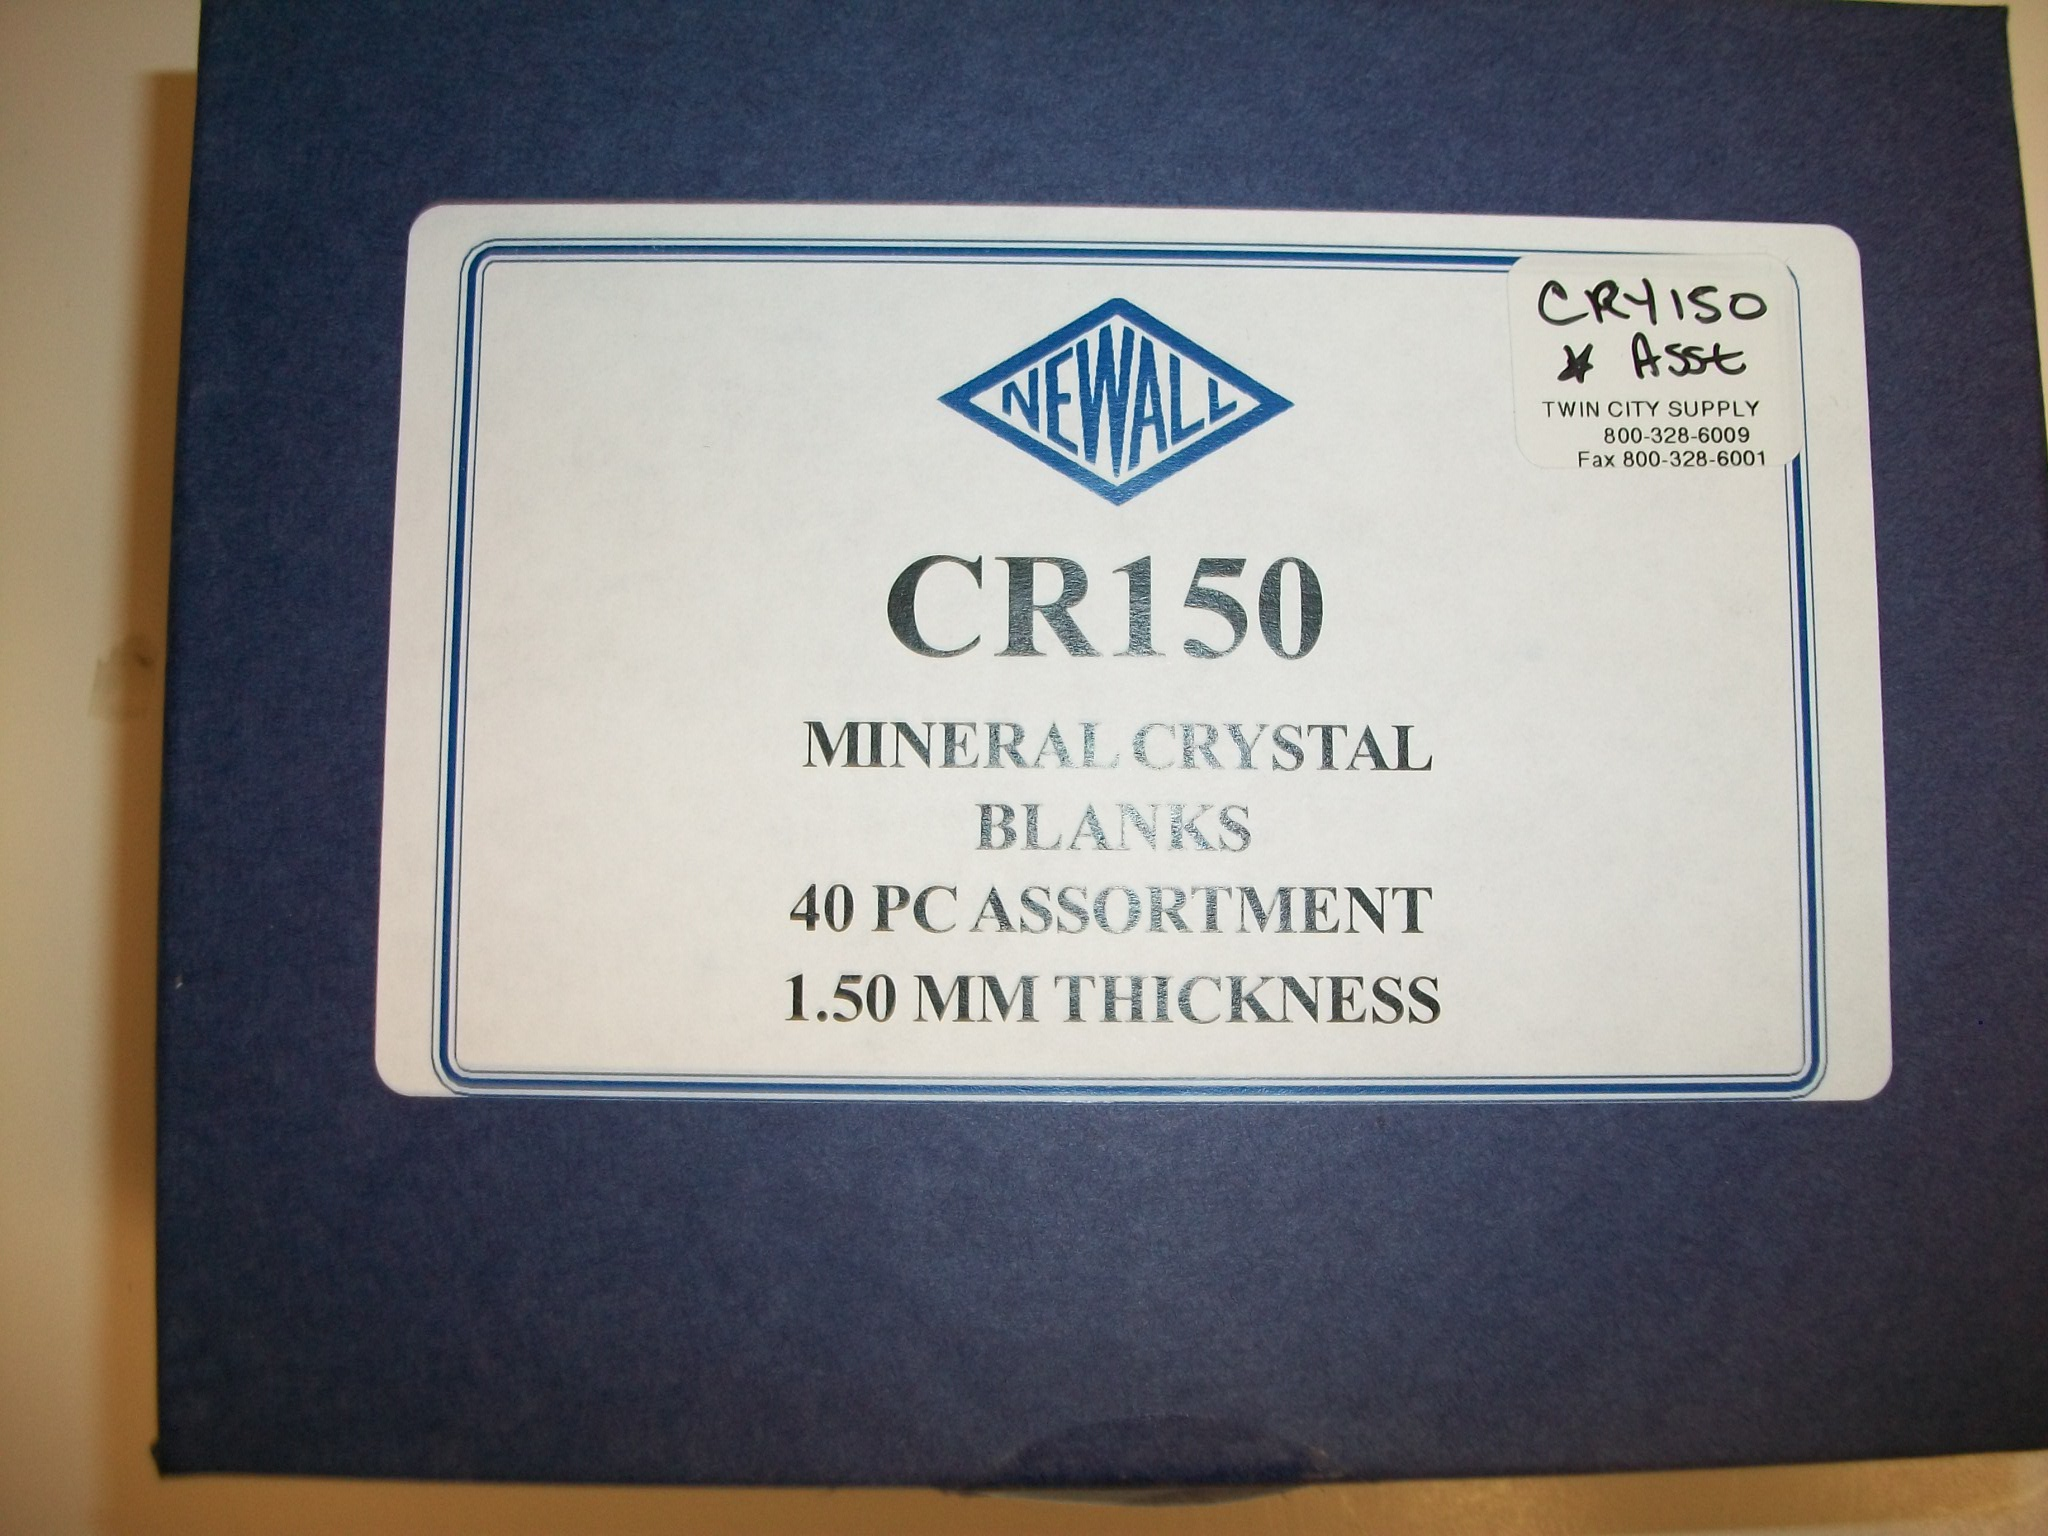 CRY150 New! 40 pc Assortment of SMG 1.50mm Mineral Glass Crystals--from Newall